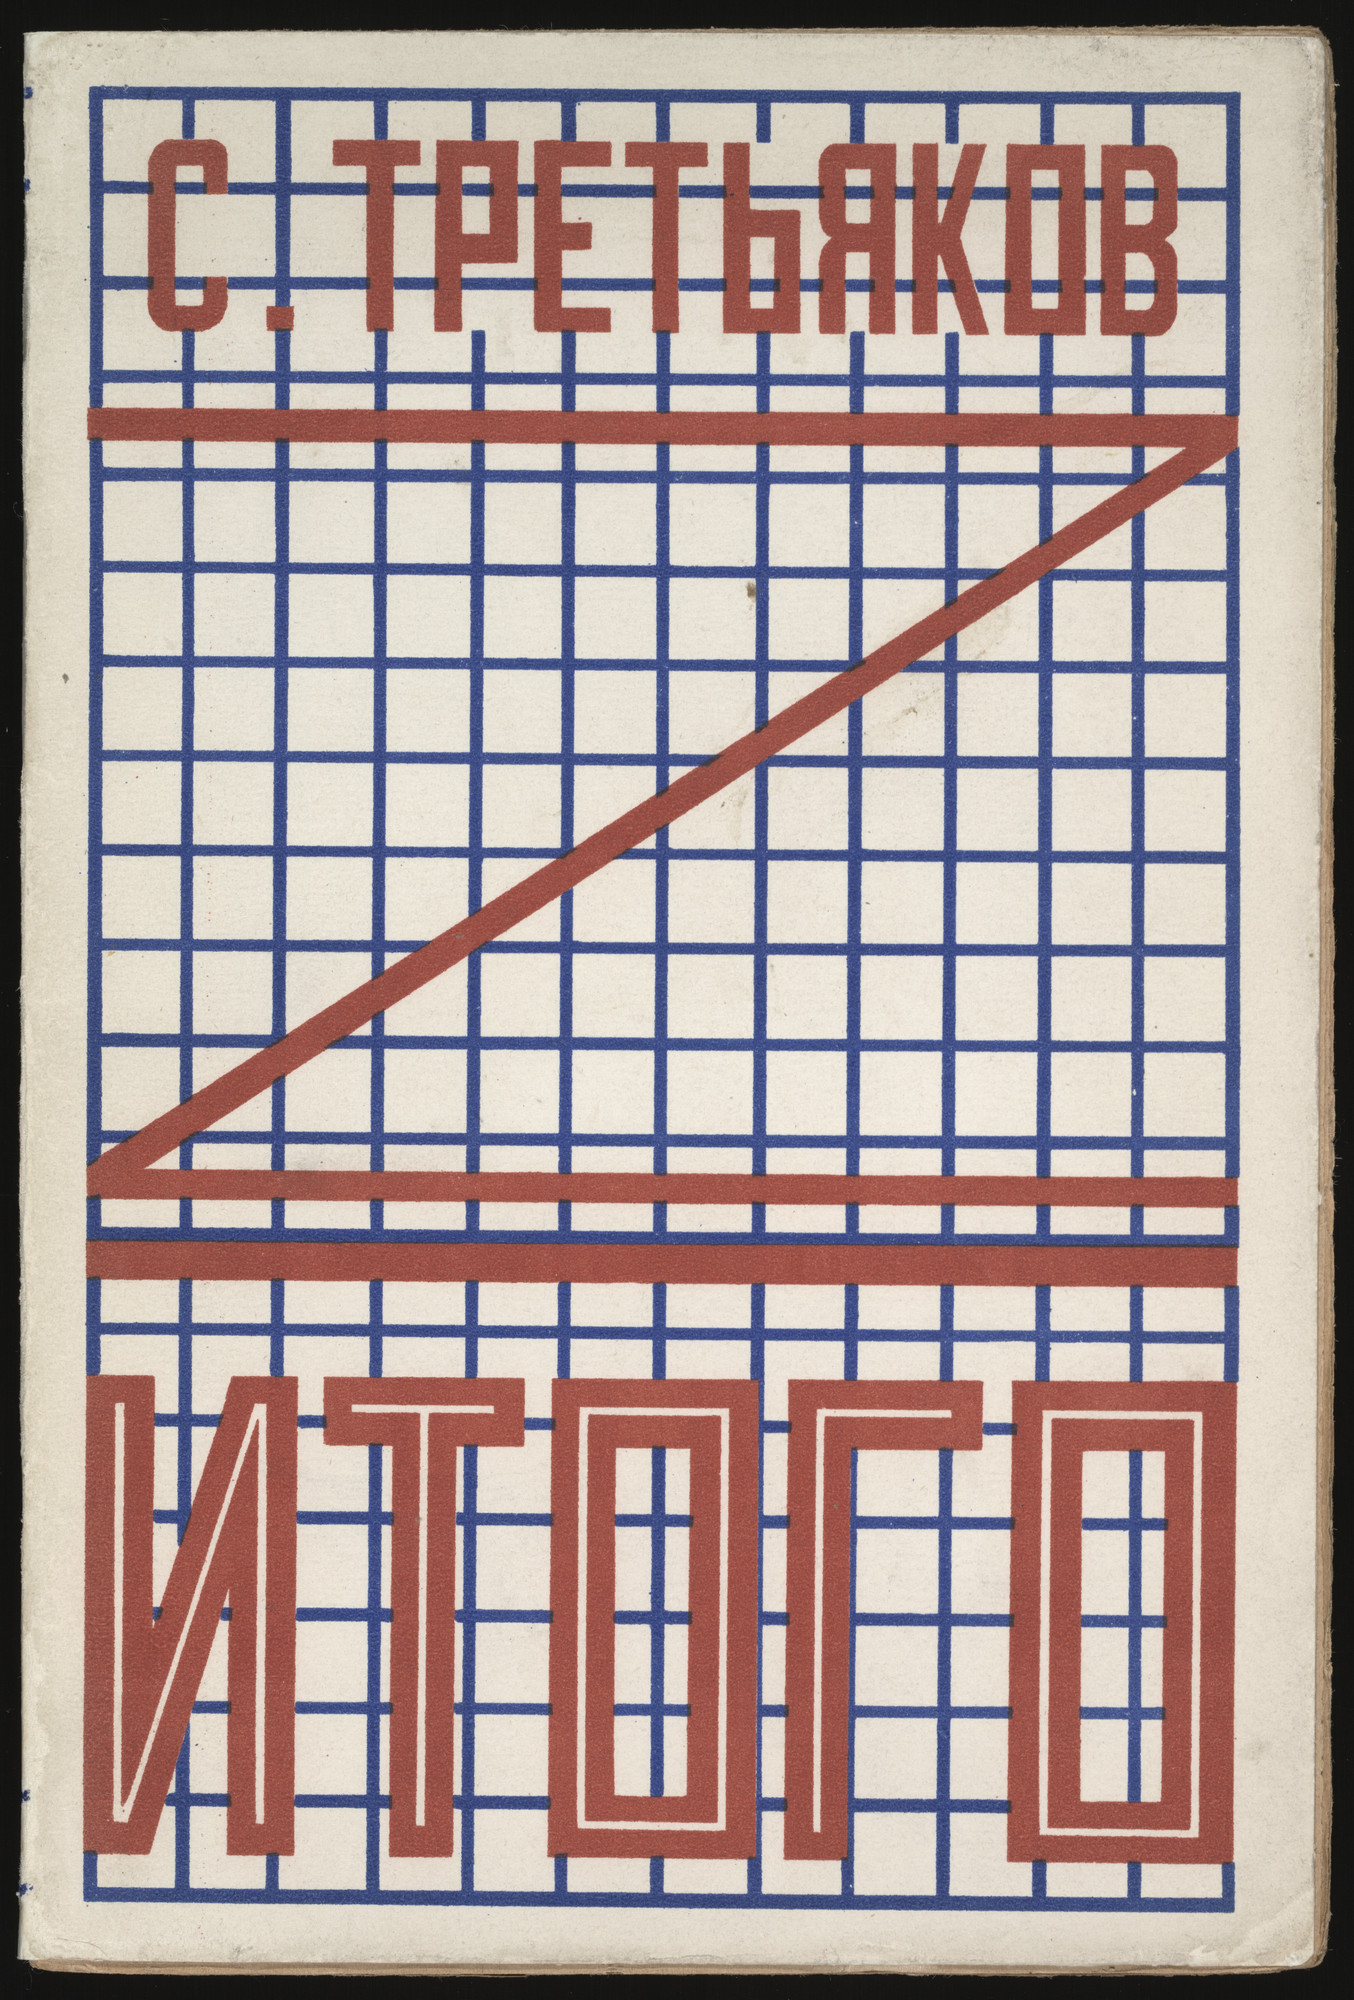 Aleksandr Rodchenko. Itogo. Stikhi (Altogether: Verse). 1924